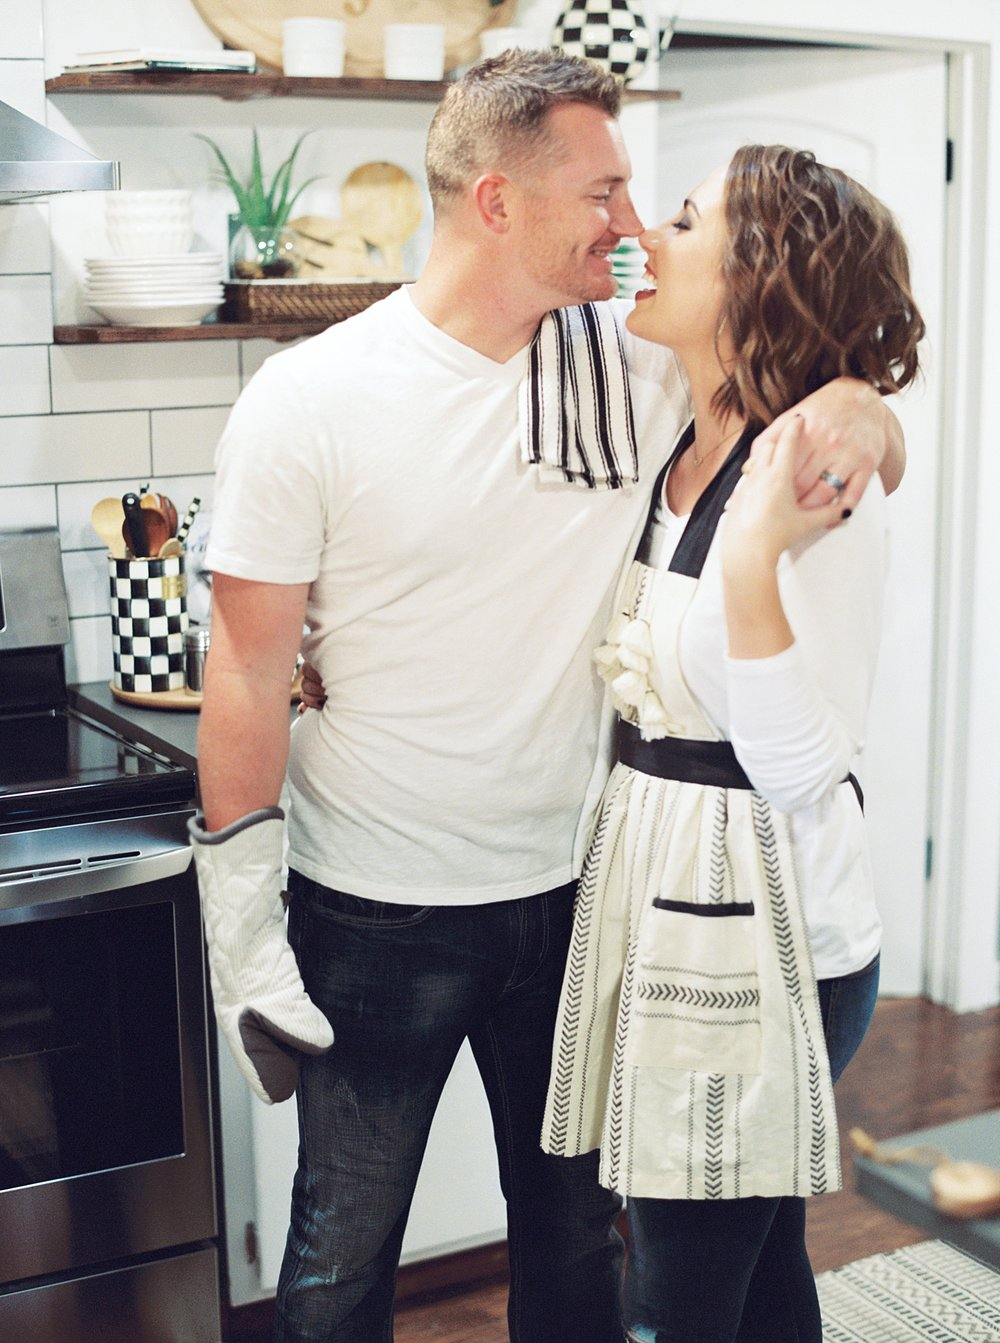 Melanie & Wes - Kitchen Lifestyle Session